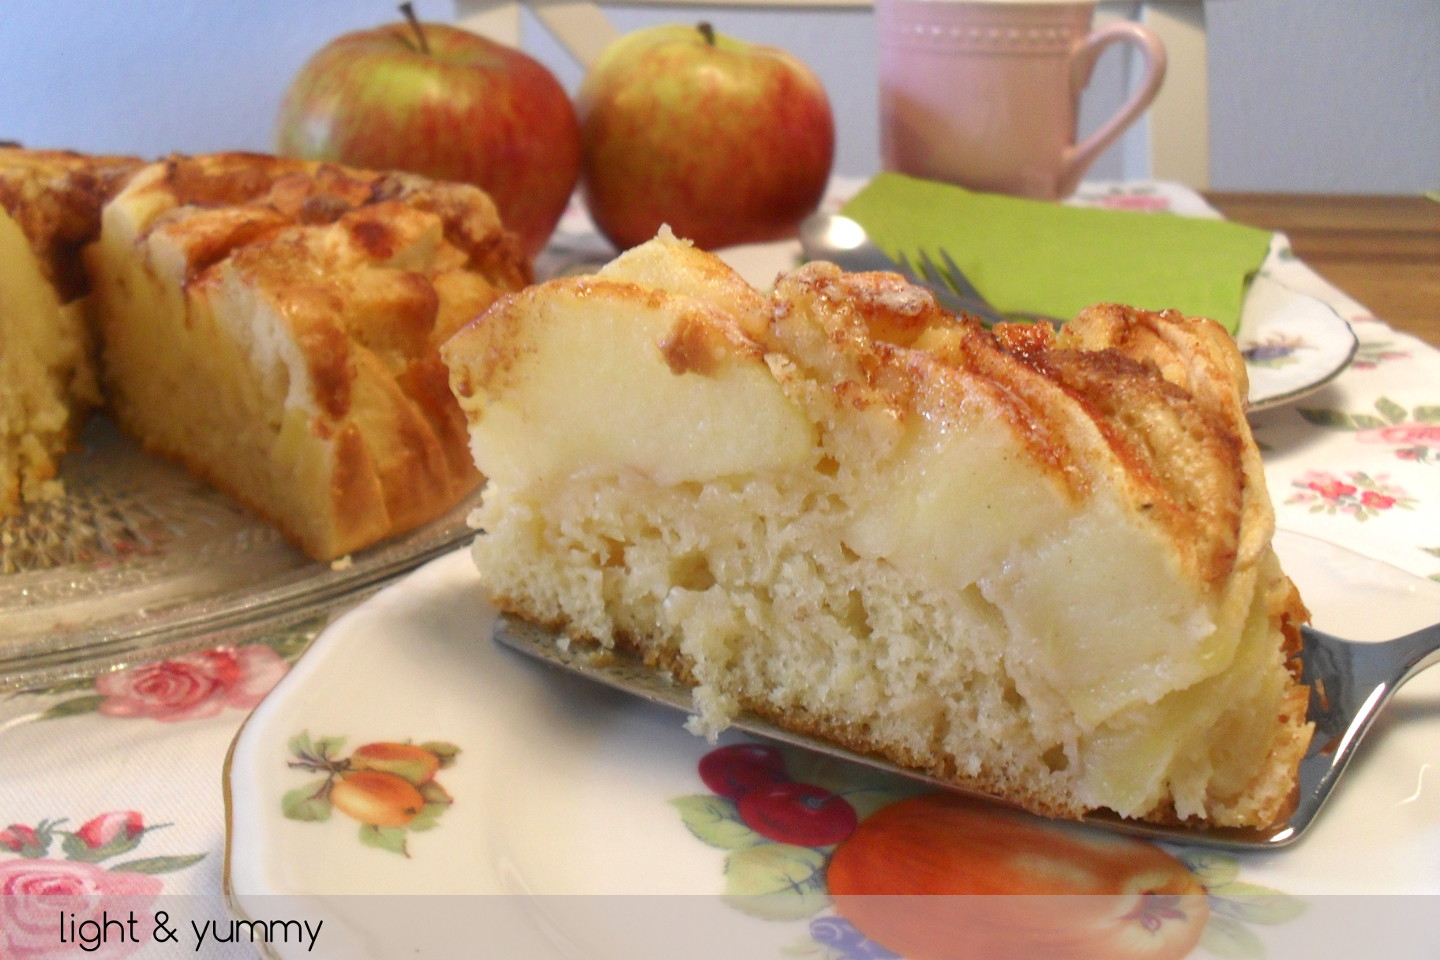 Light apple and cinnamon cake, Light & Yummy